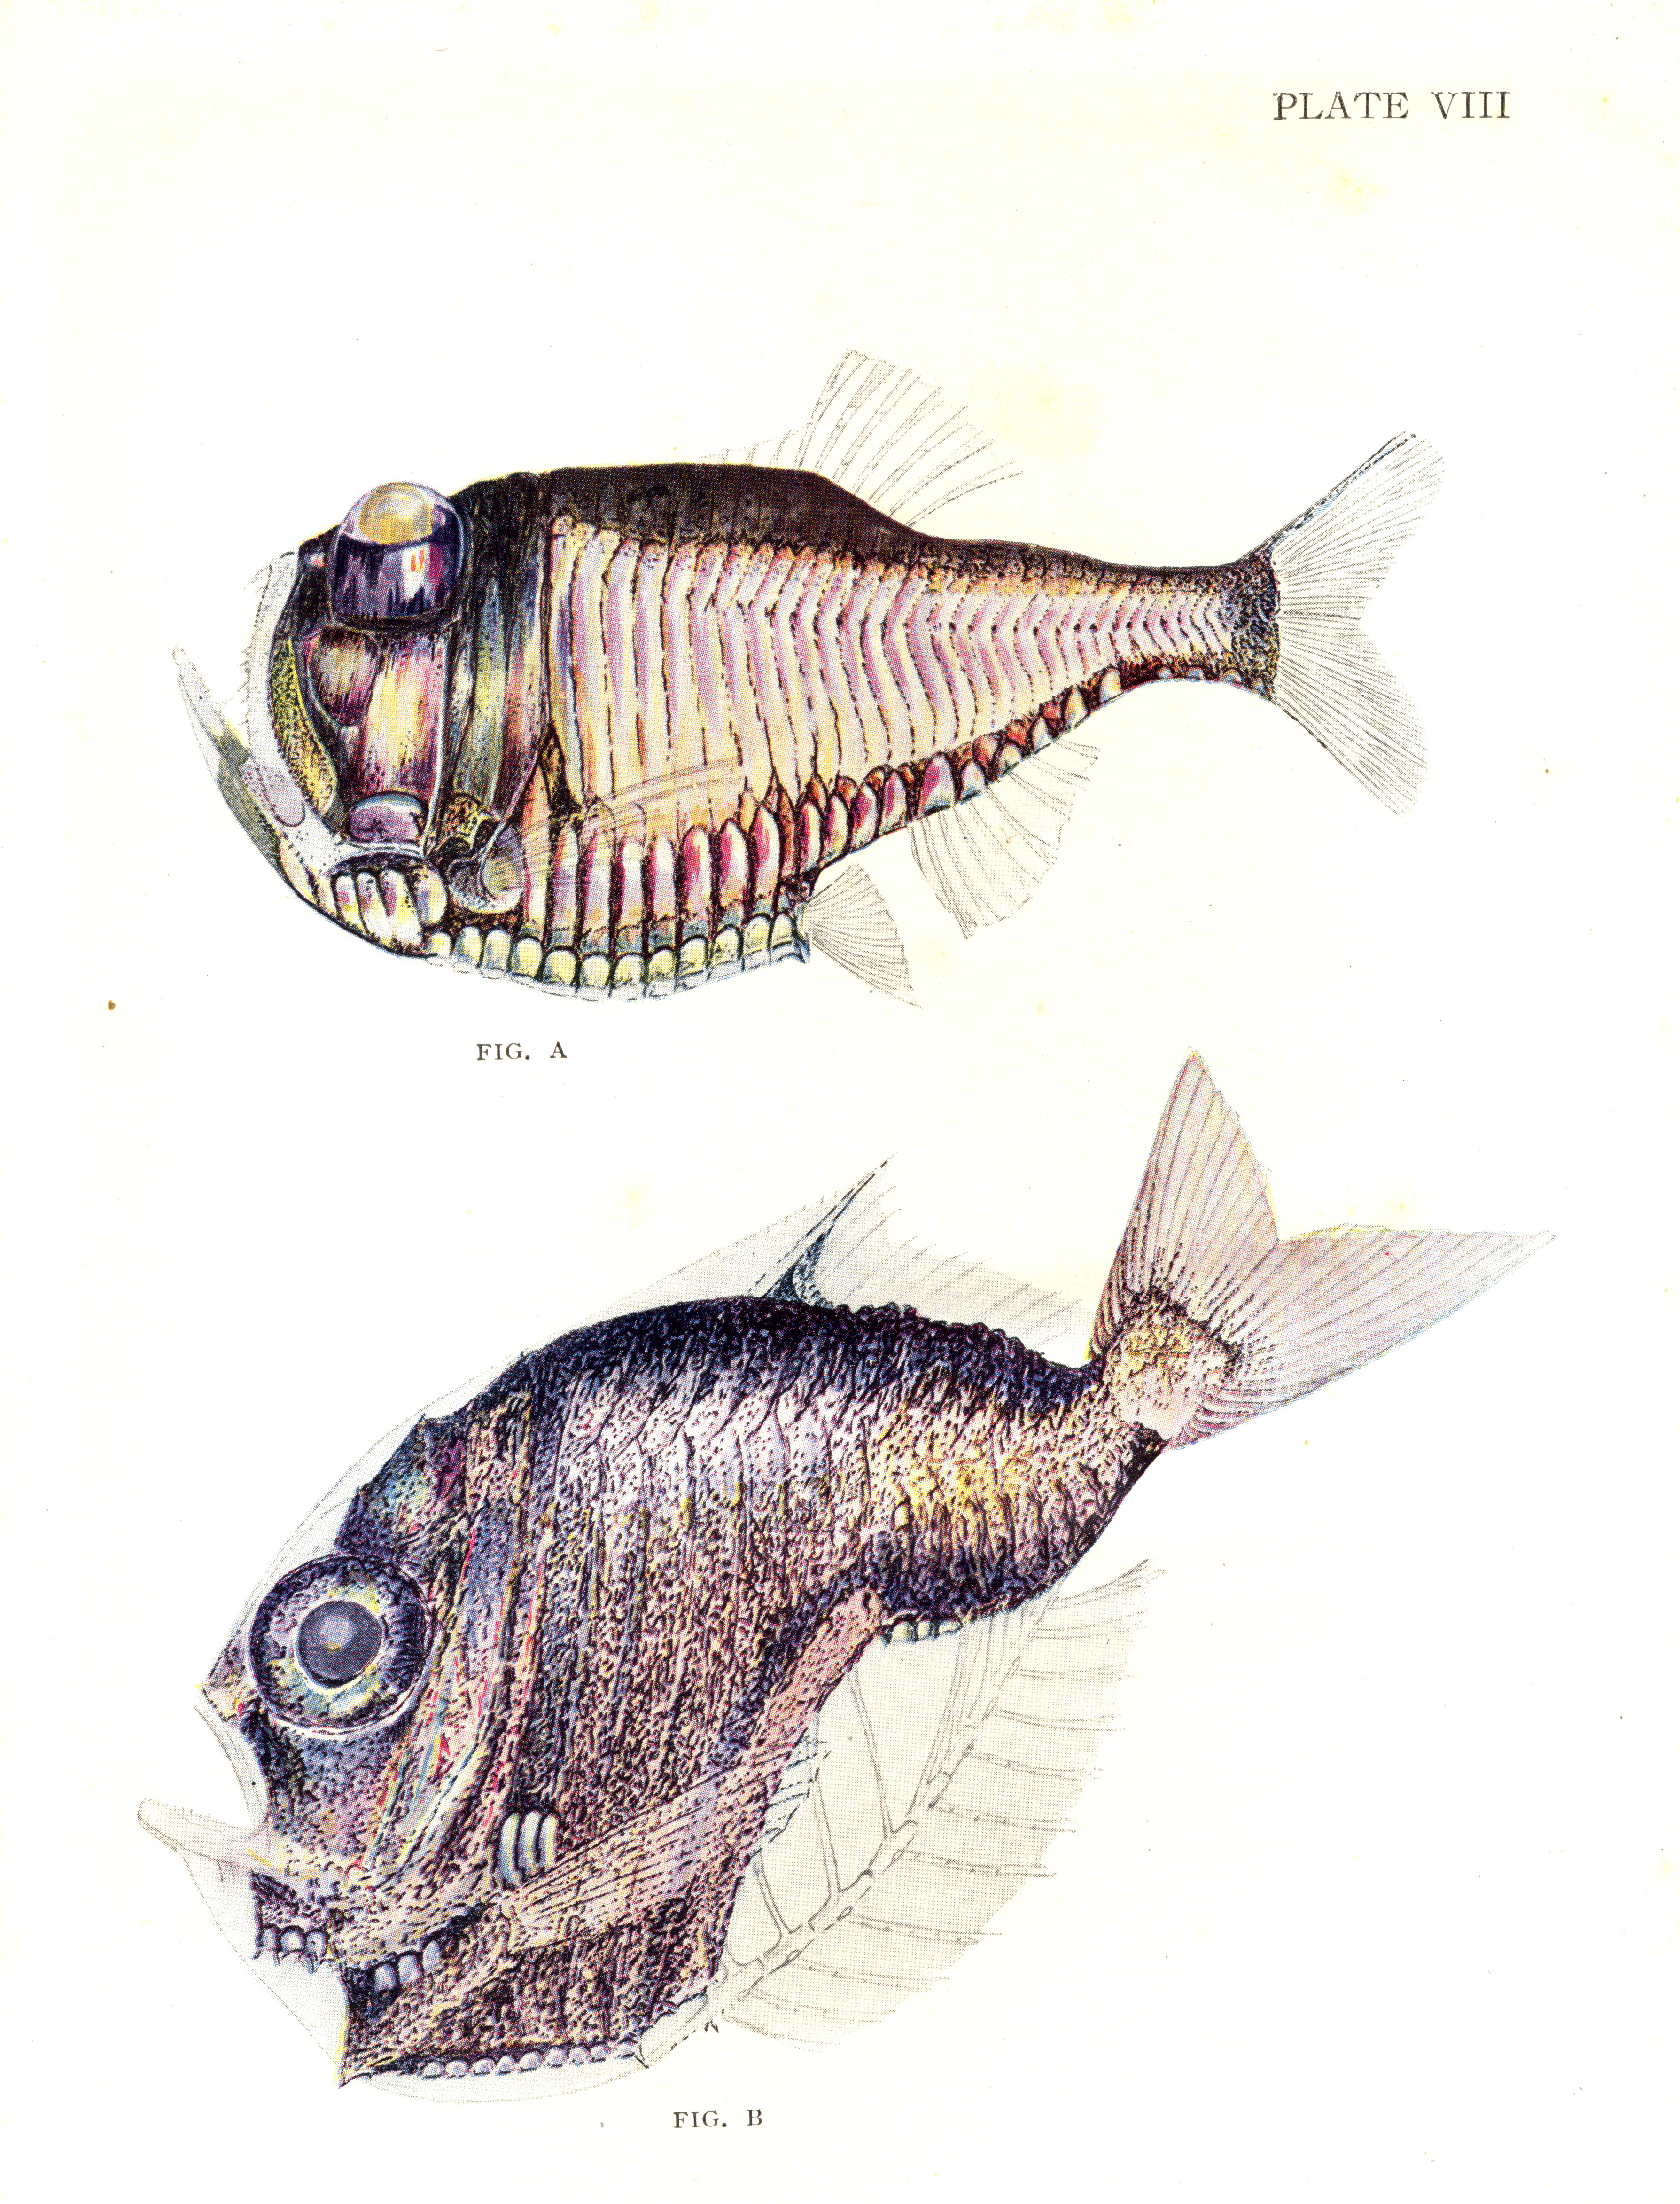 Fig. A. Argyropelecus. A luminescent deep-sea fish with eyes directed upward. Fig. B. Sternoptyx. A common Deep-sea fish.